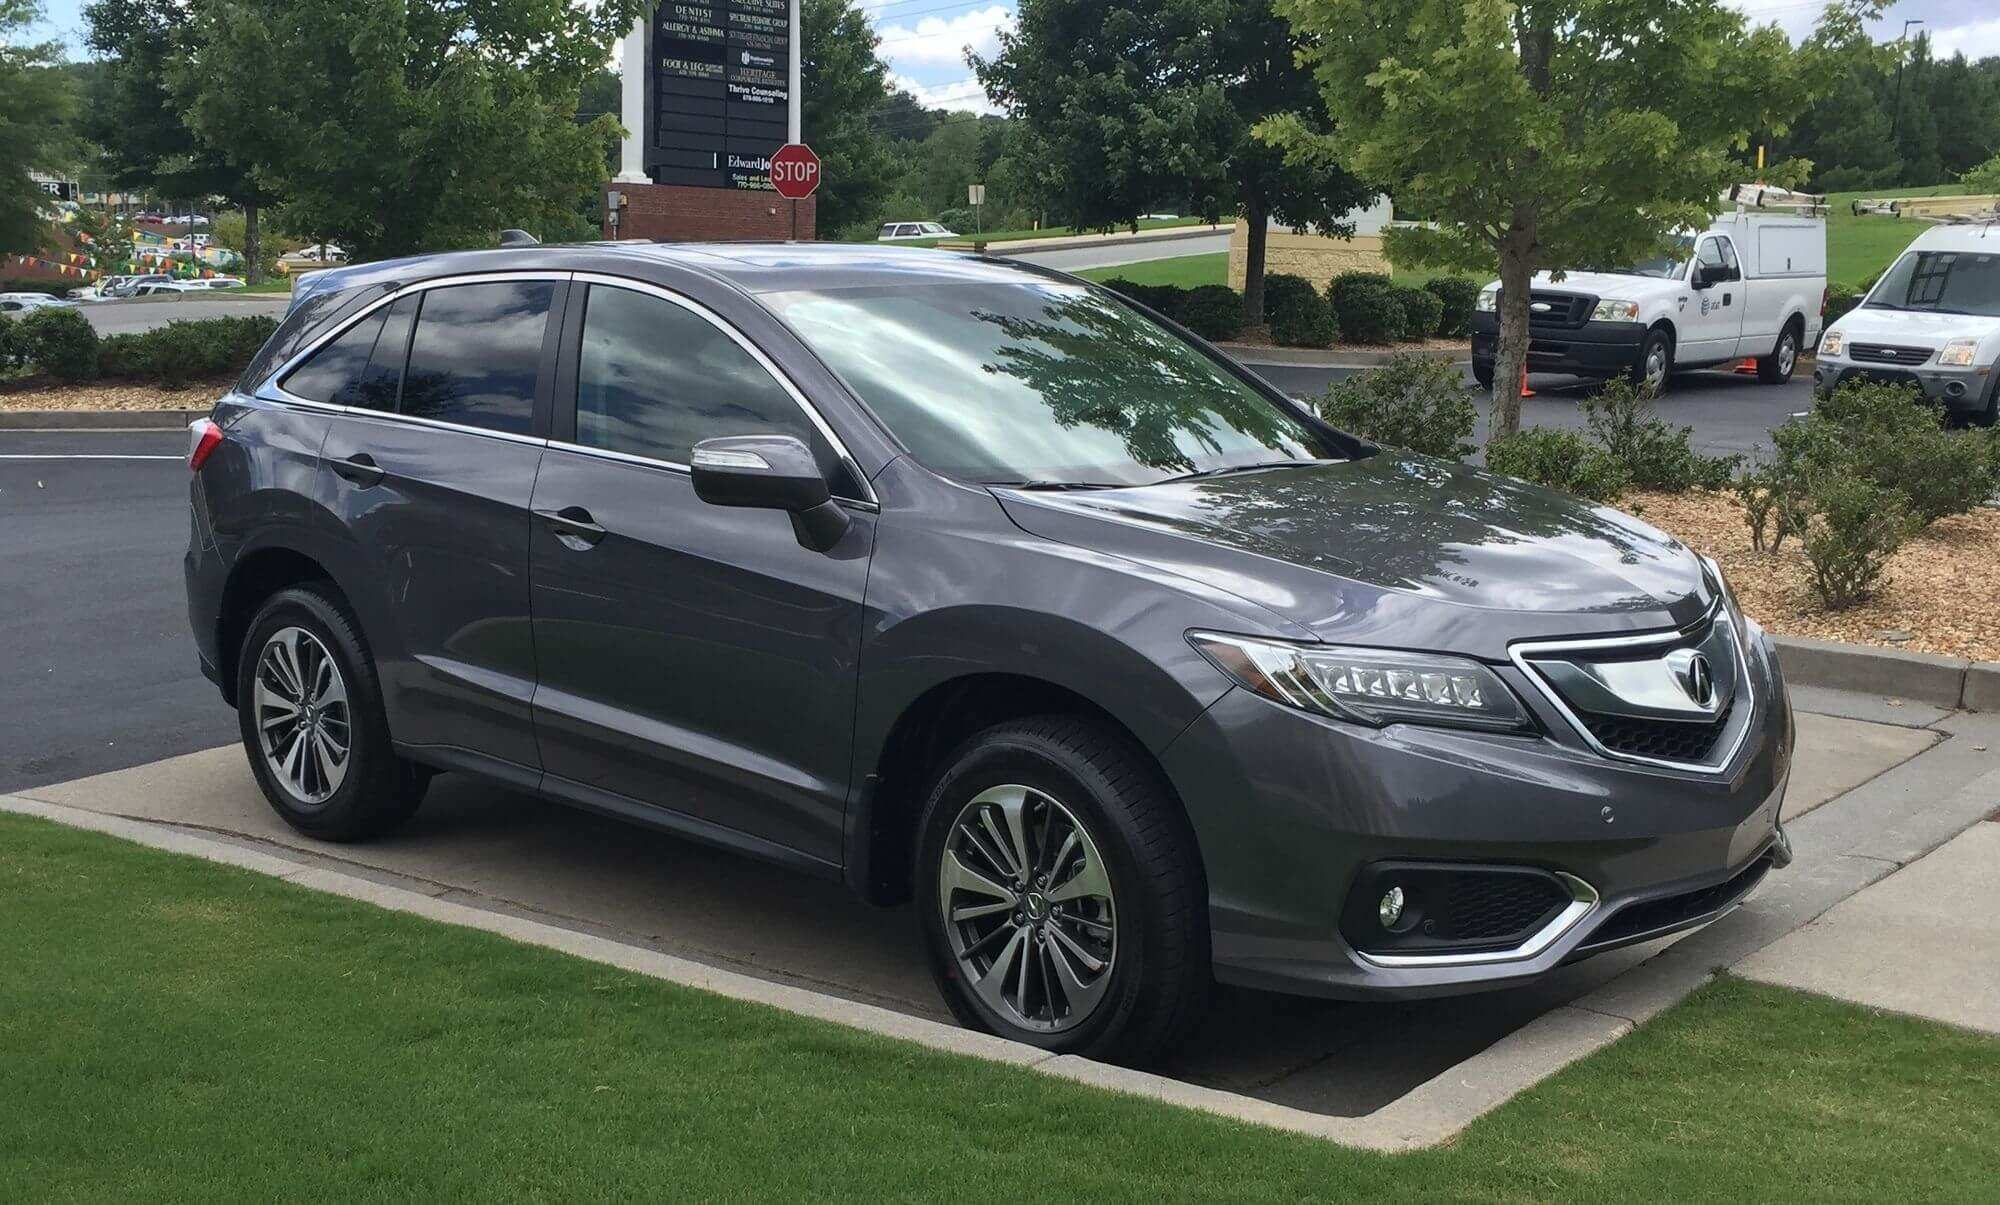 83 New Release Date For 2020 Acura Rdx Photos